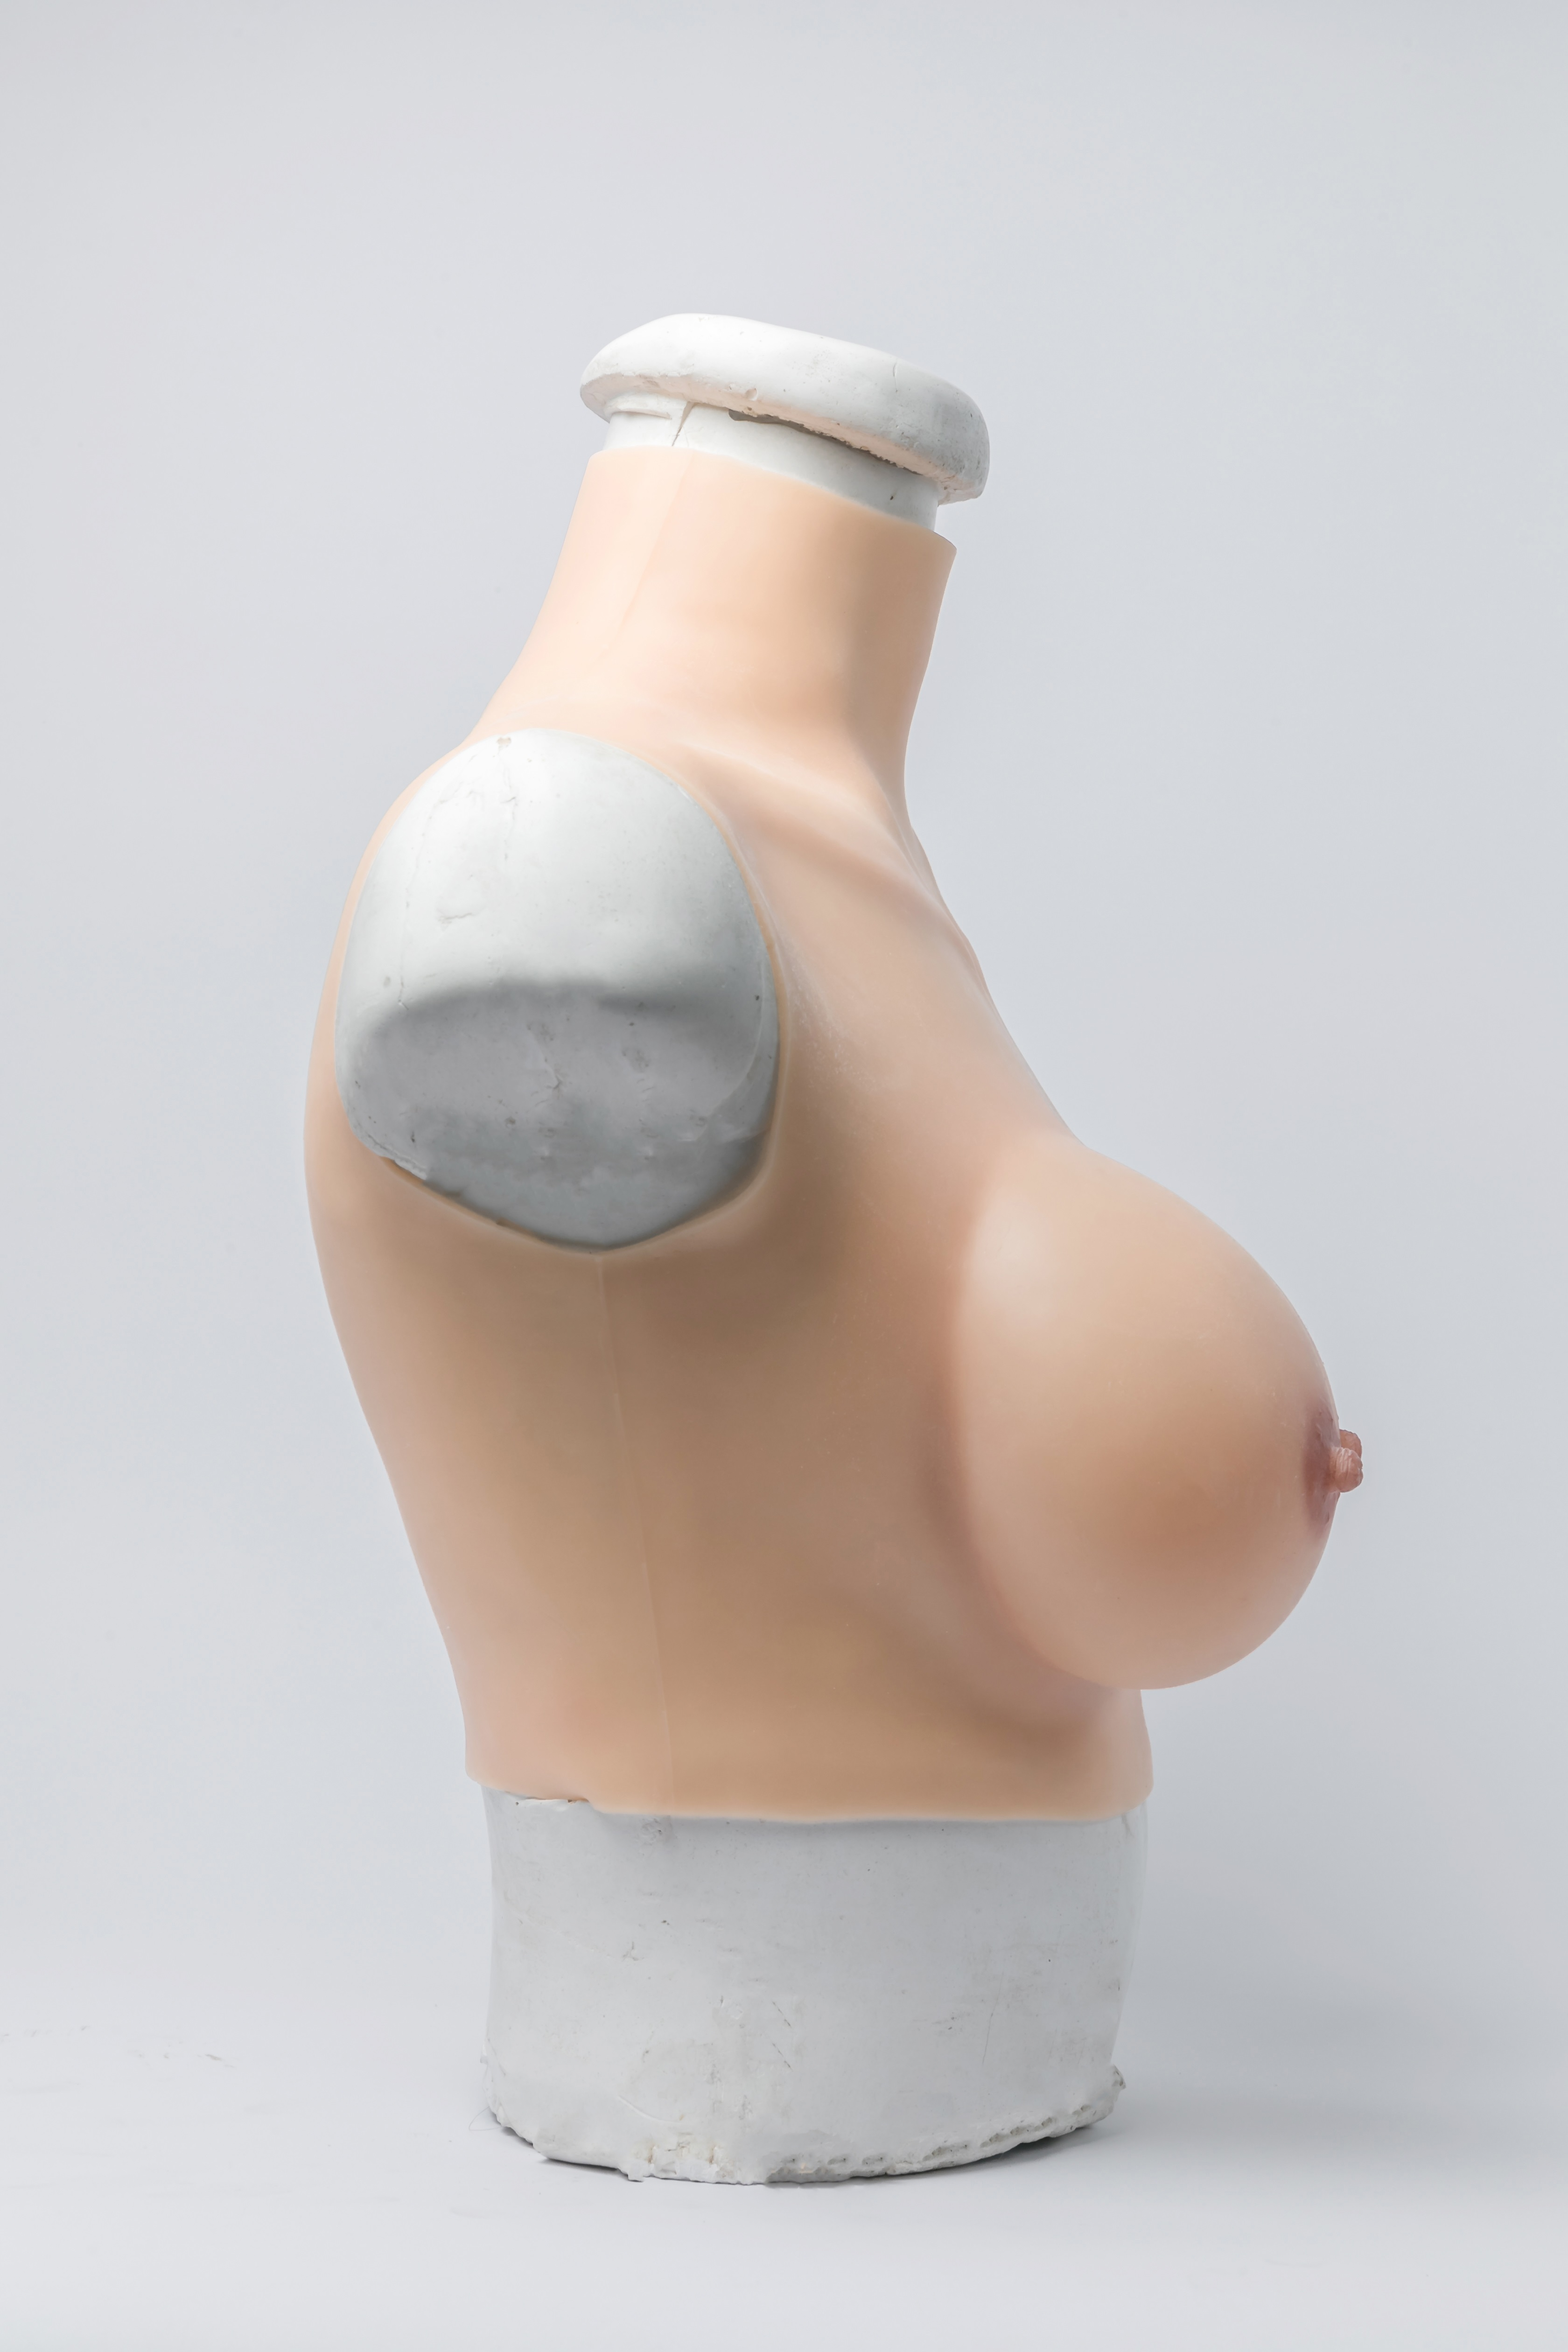 cheap silicone breast plate Transgender